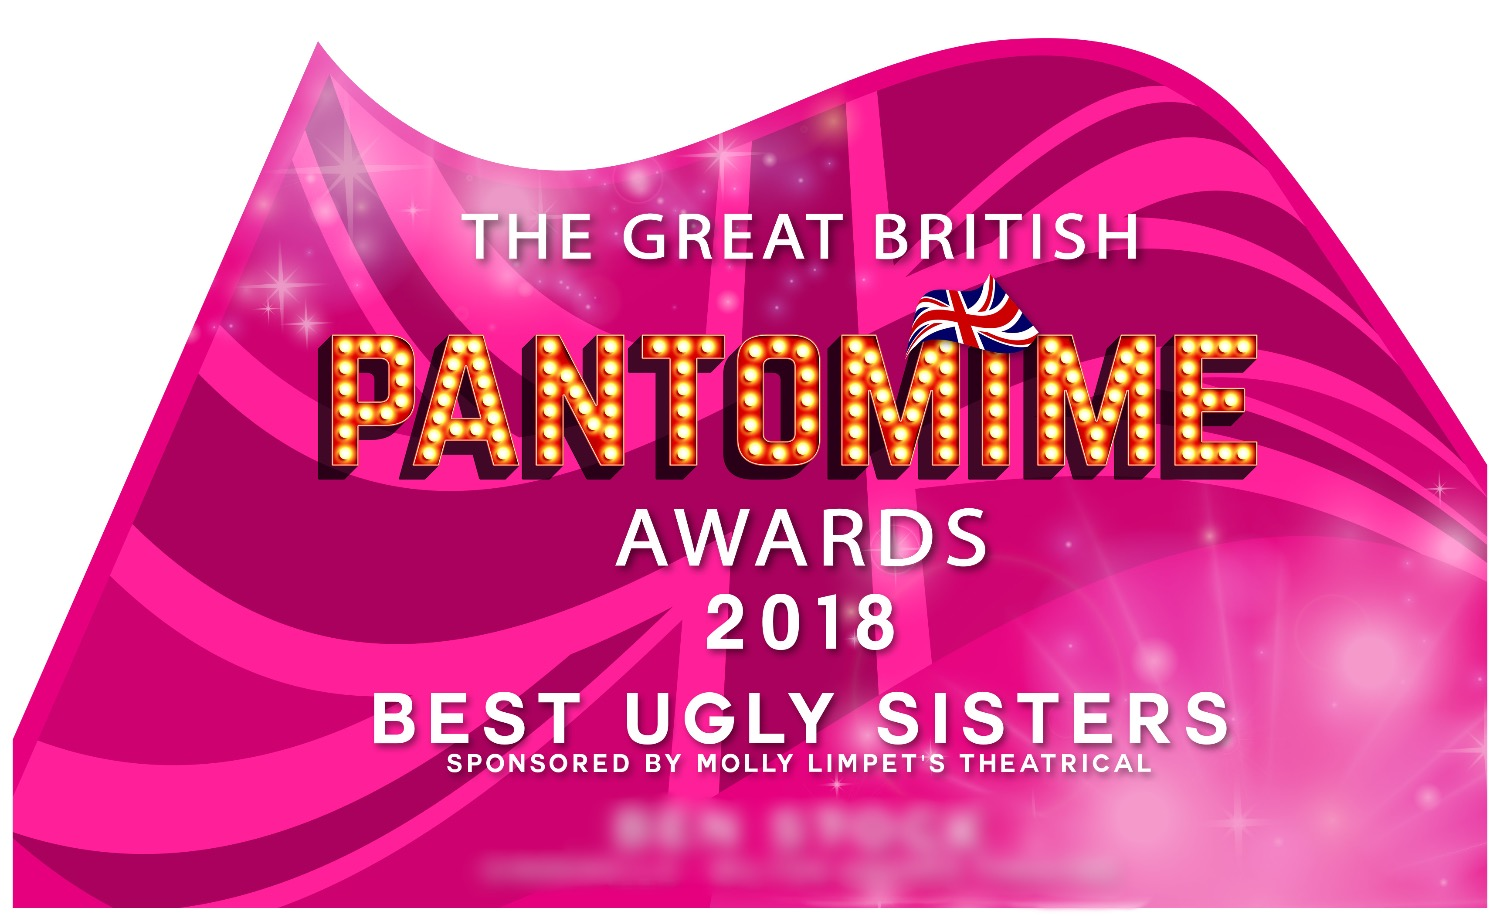 The Great British Pantomime Awards